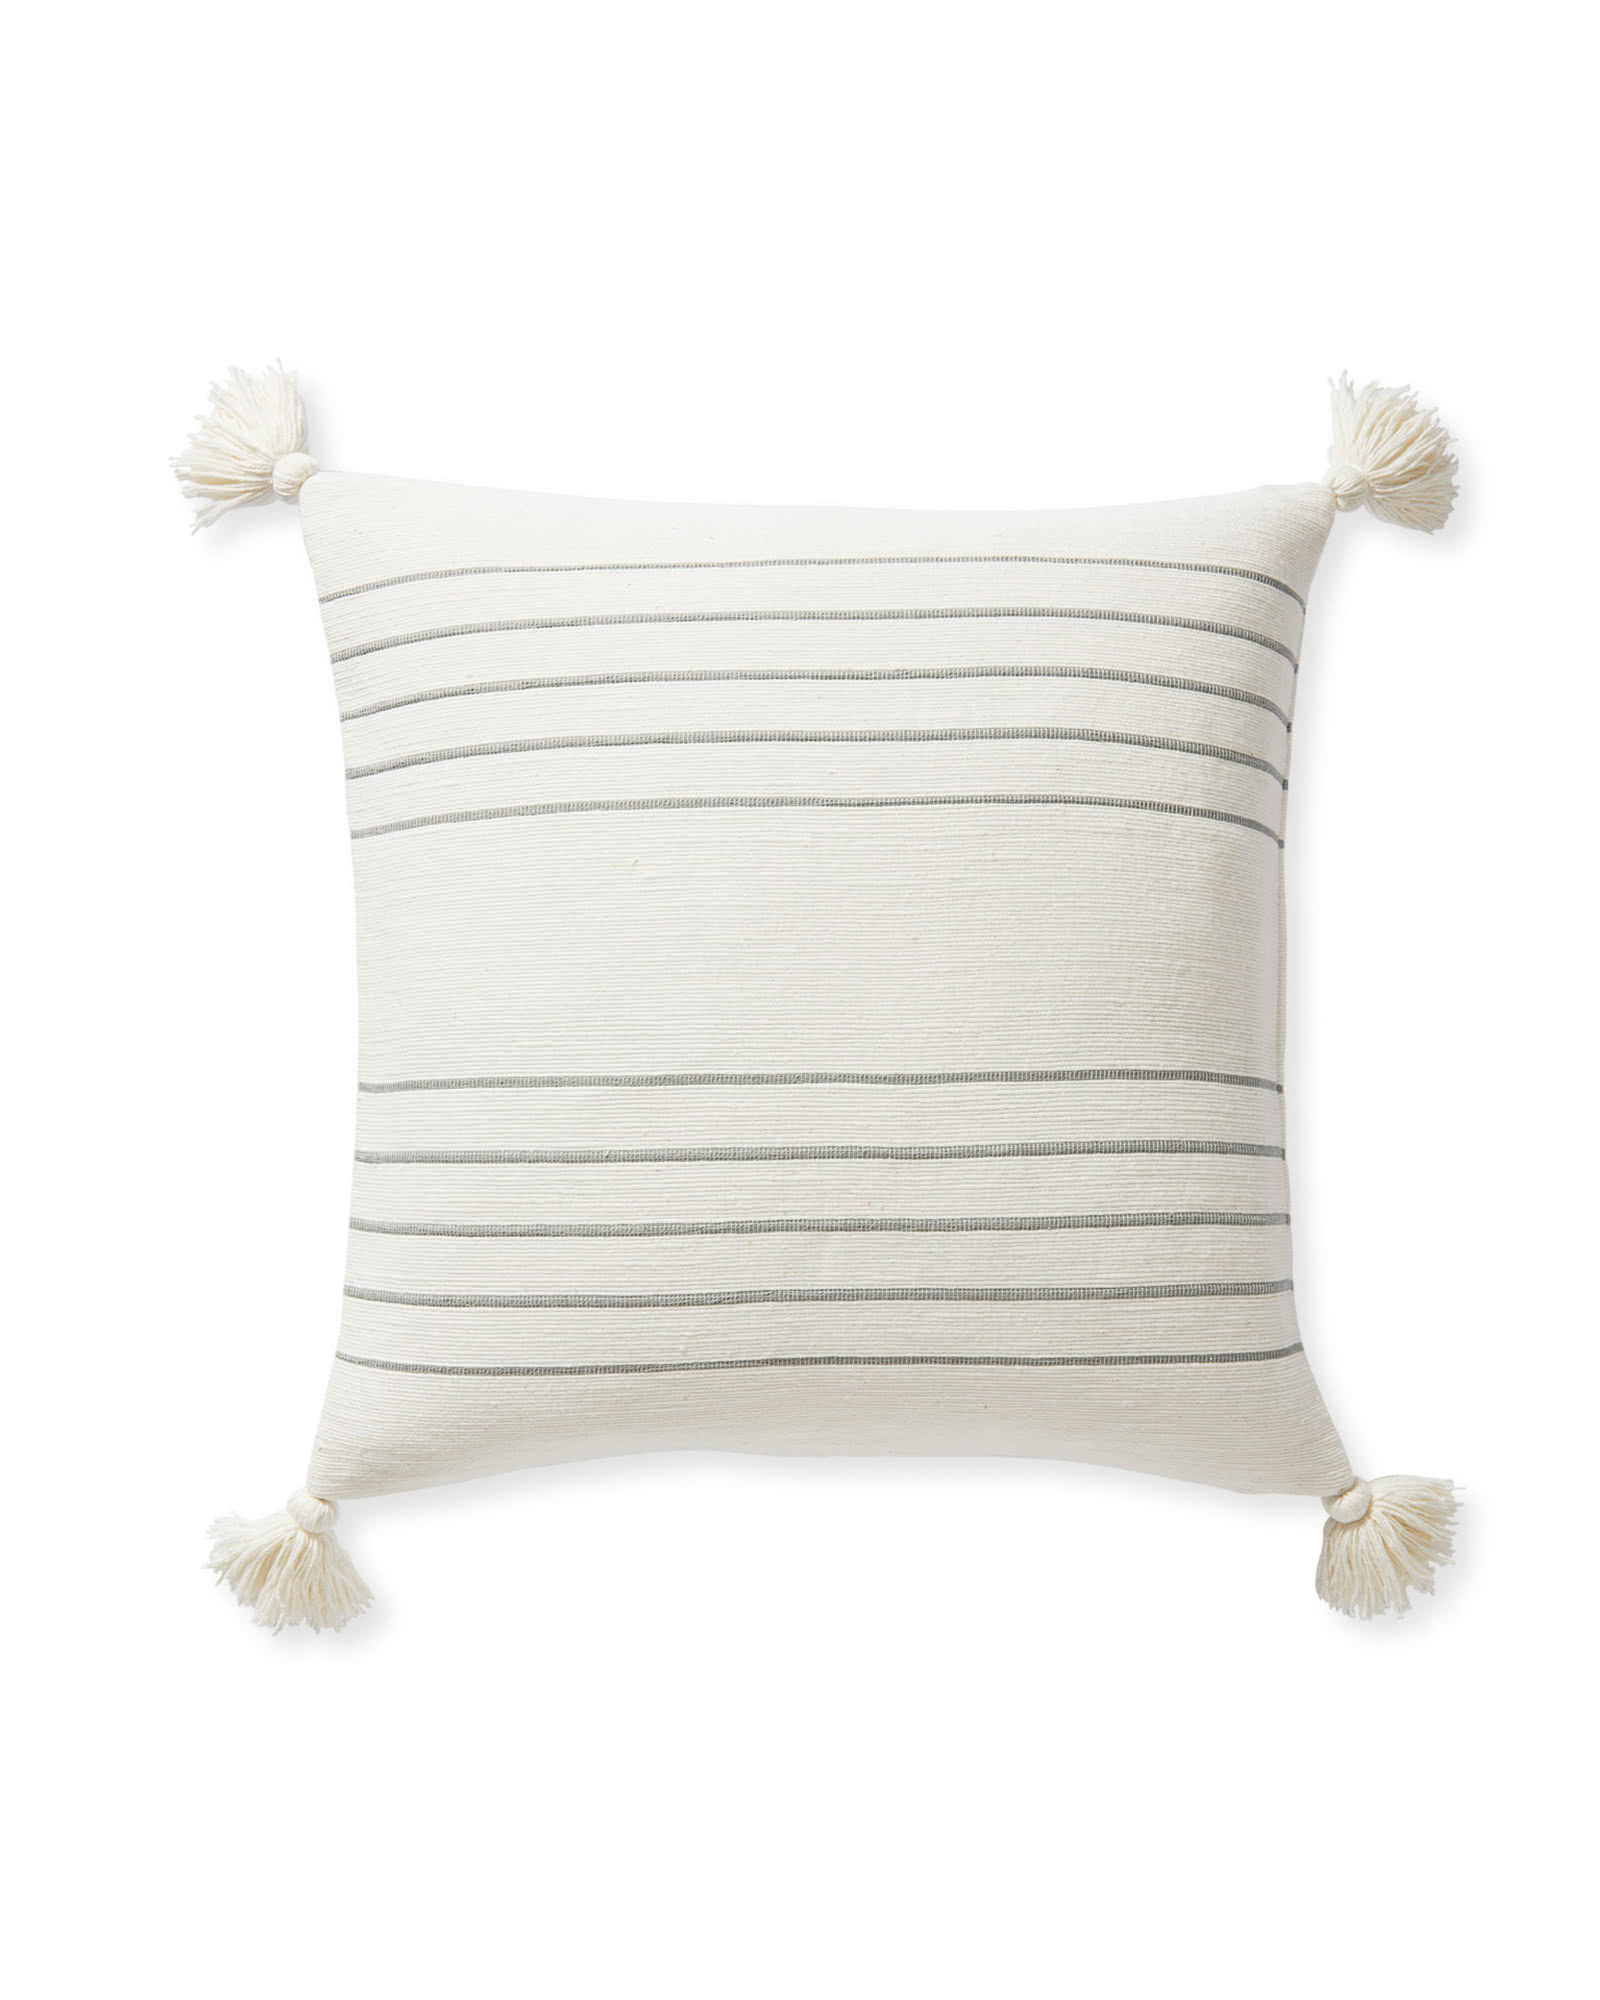 Del Mar Pillow Cover, Smoke